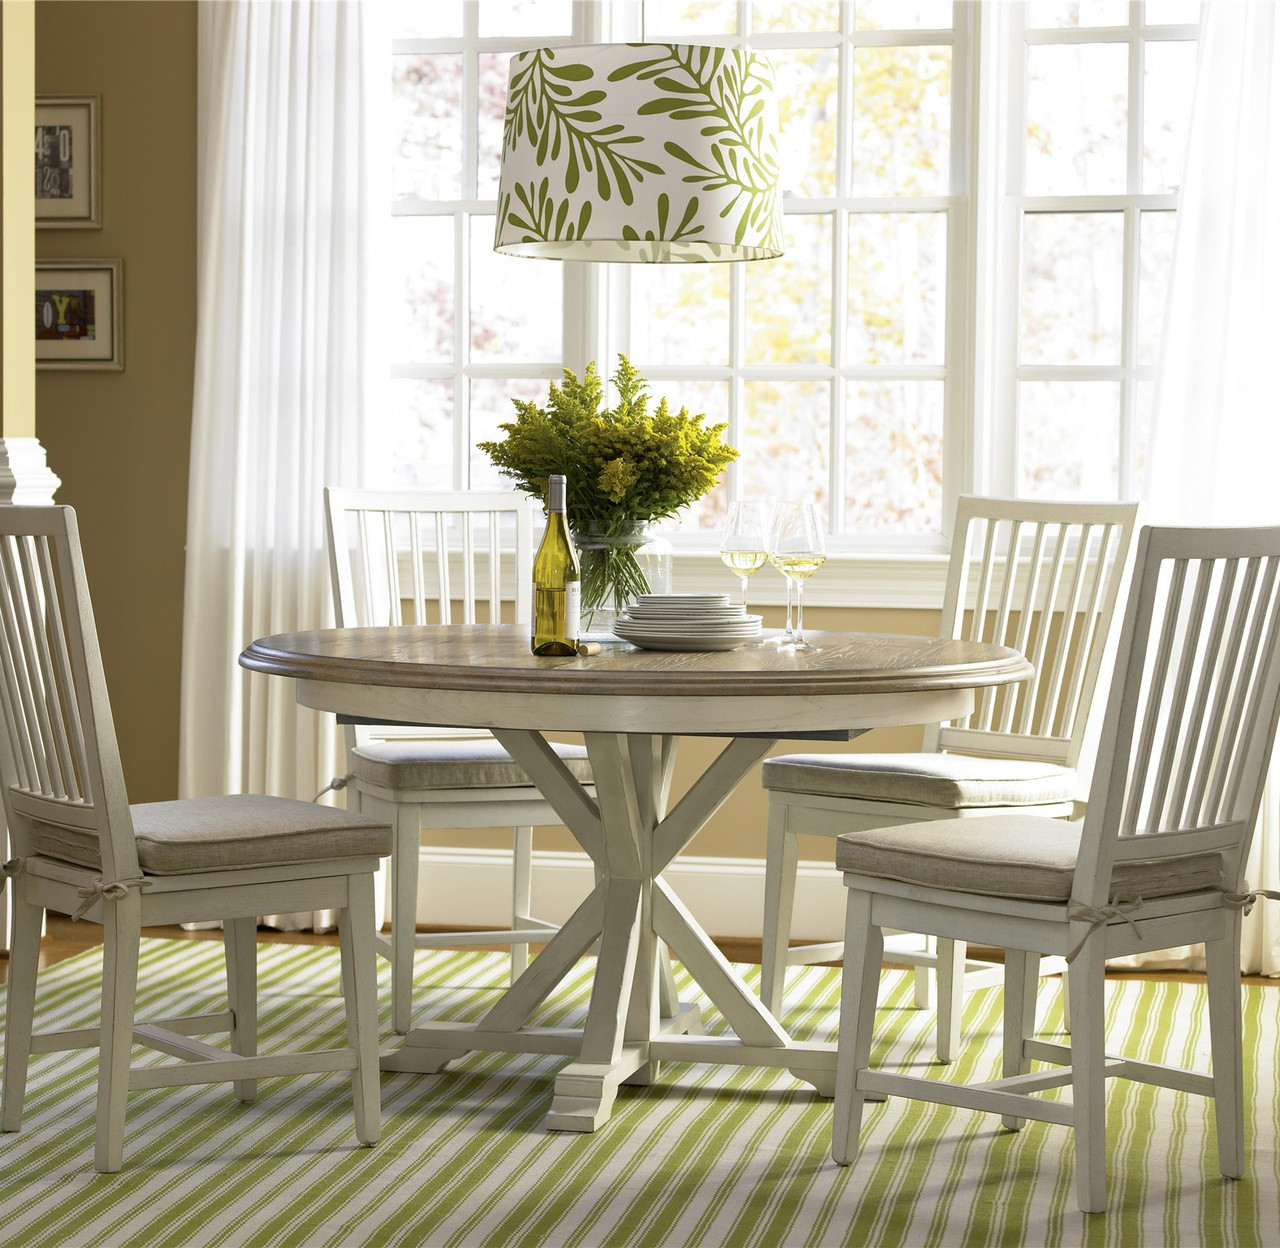 Coastal Beach White Oak Round Expandable Dining Table 54 Part 38